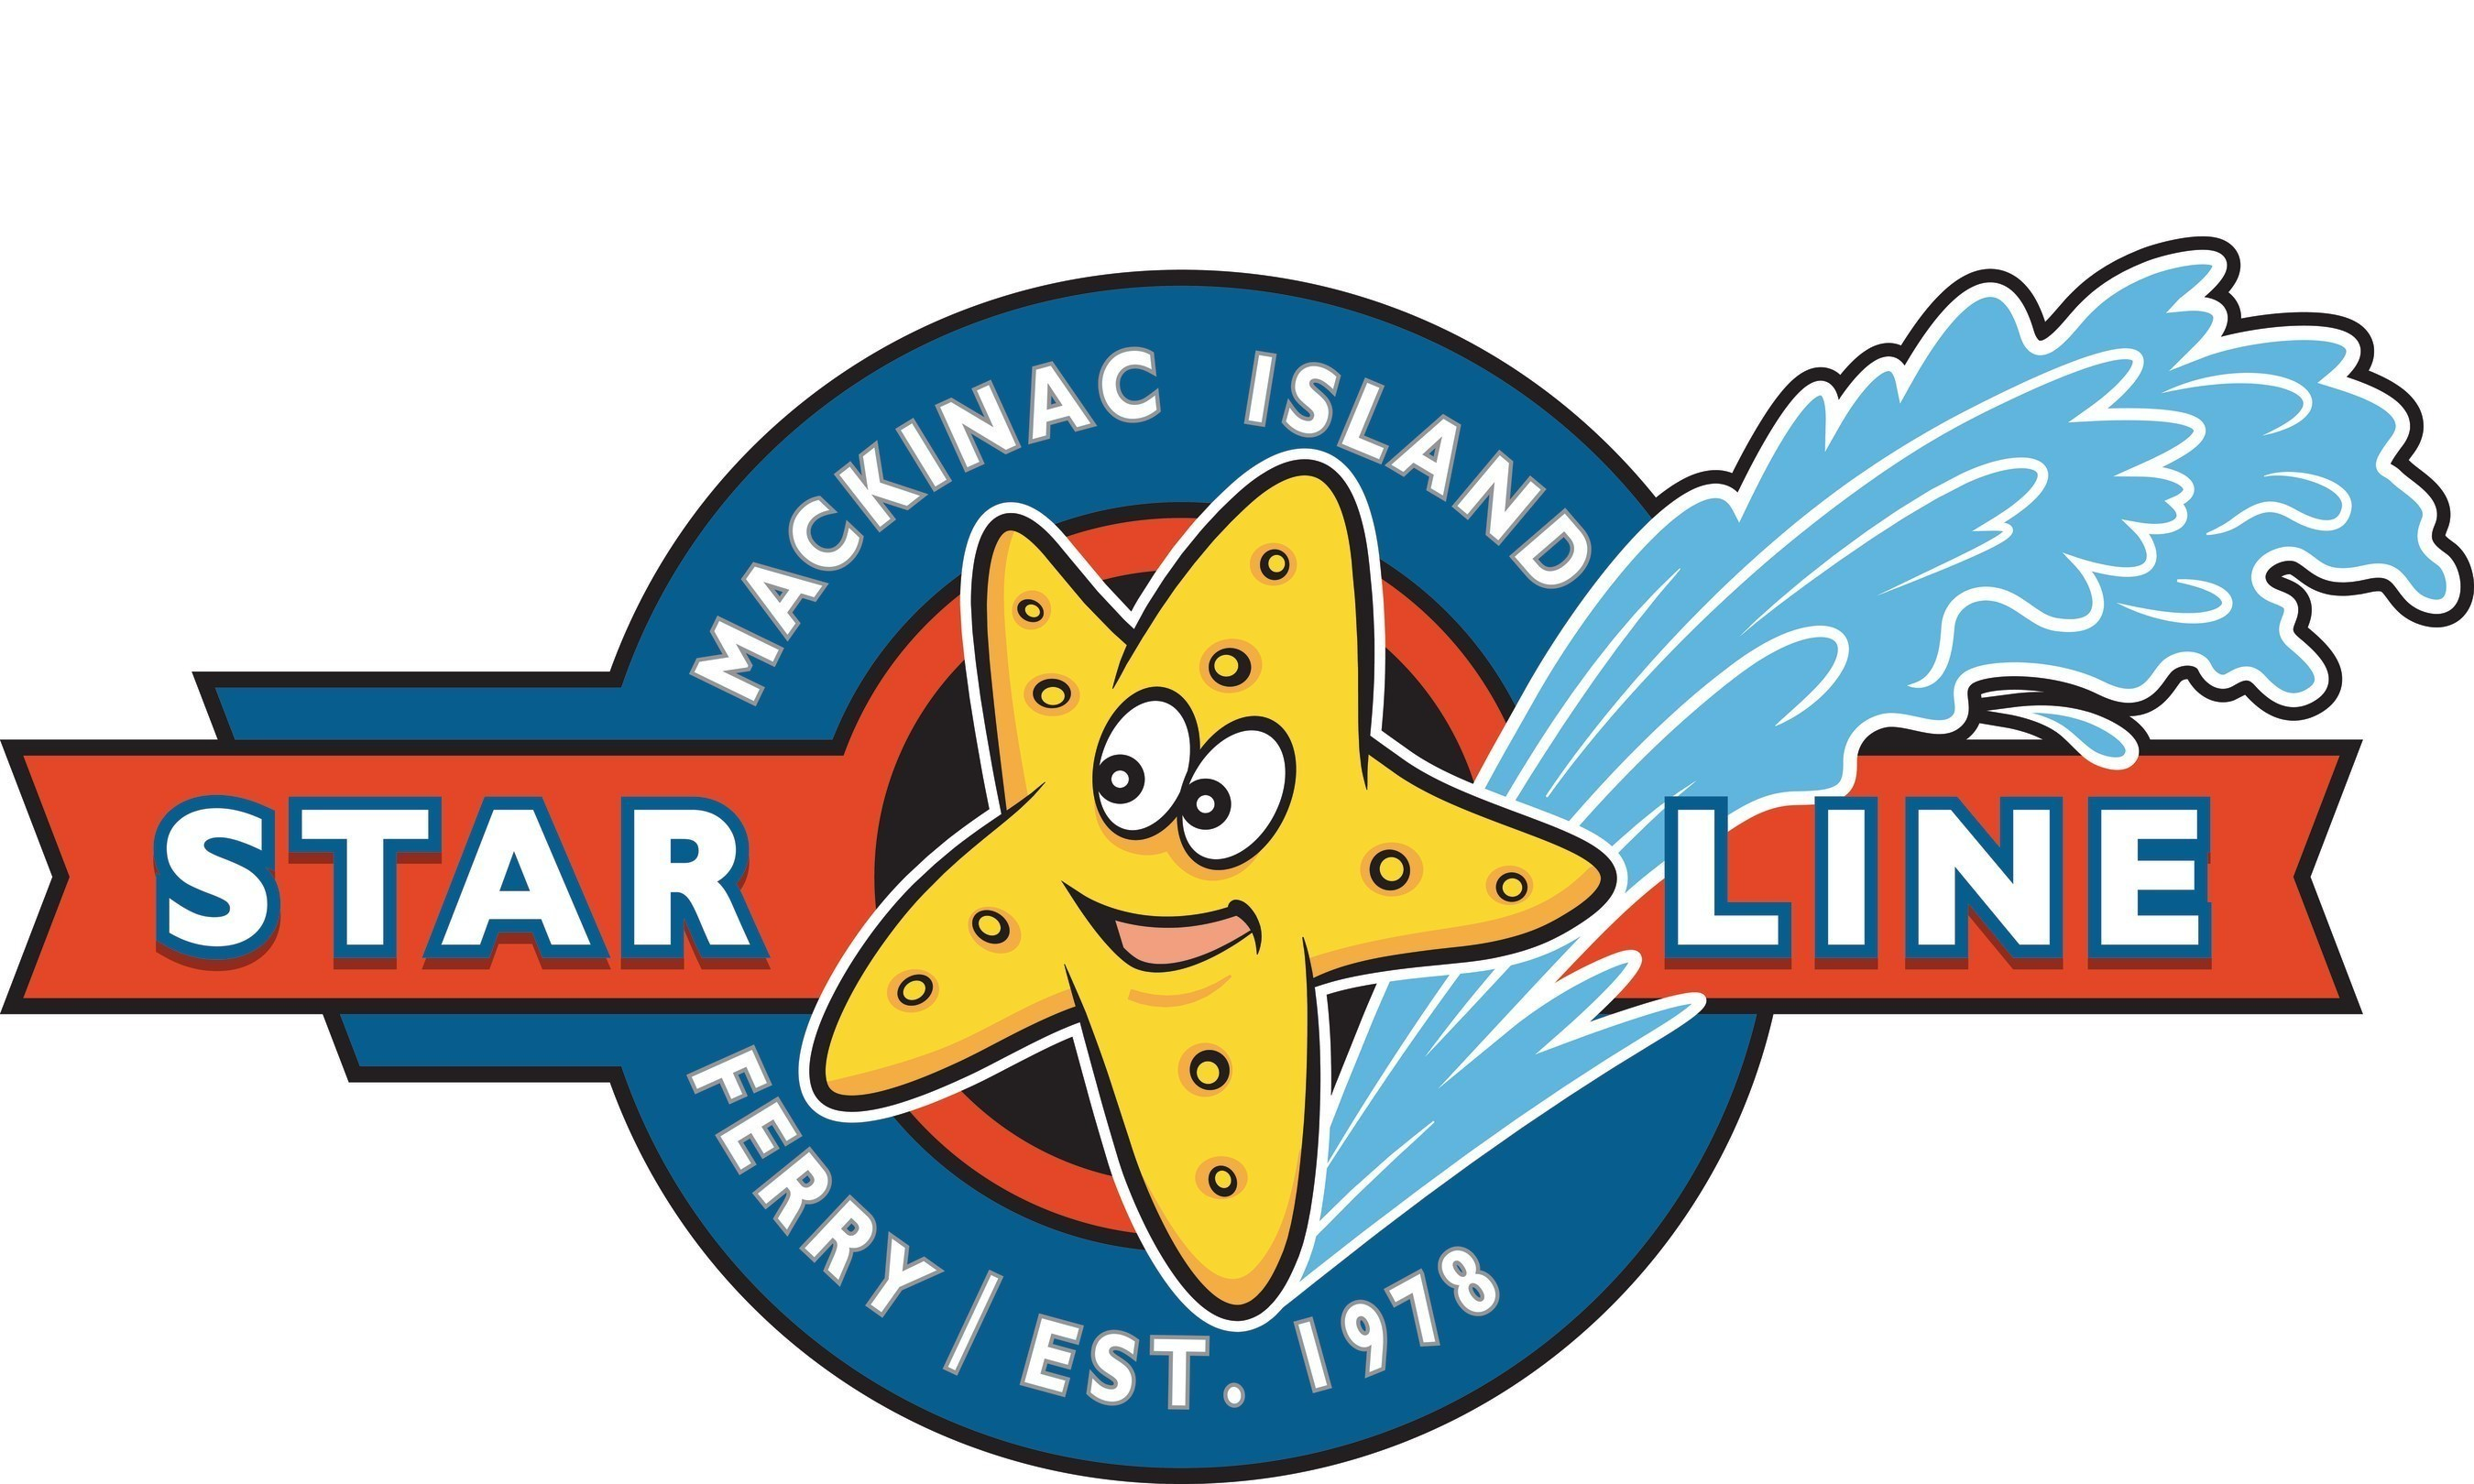 Star Line Mackinac Island Ferry Announces Intent to Purchase.